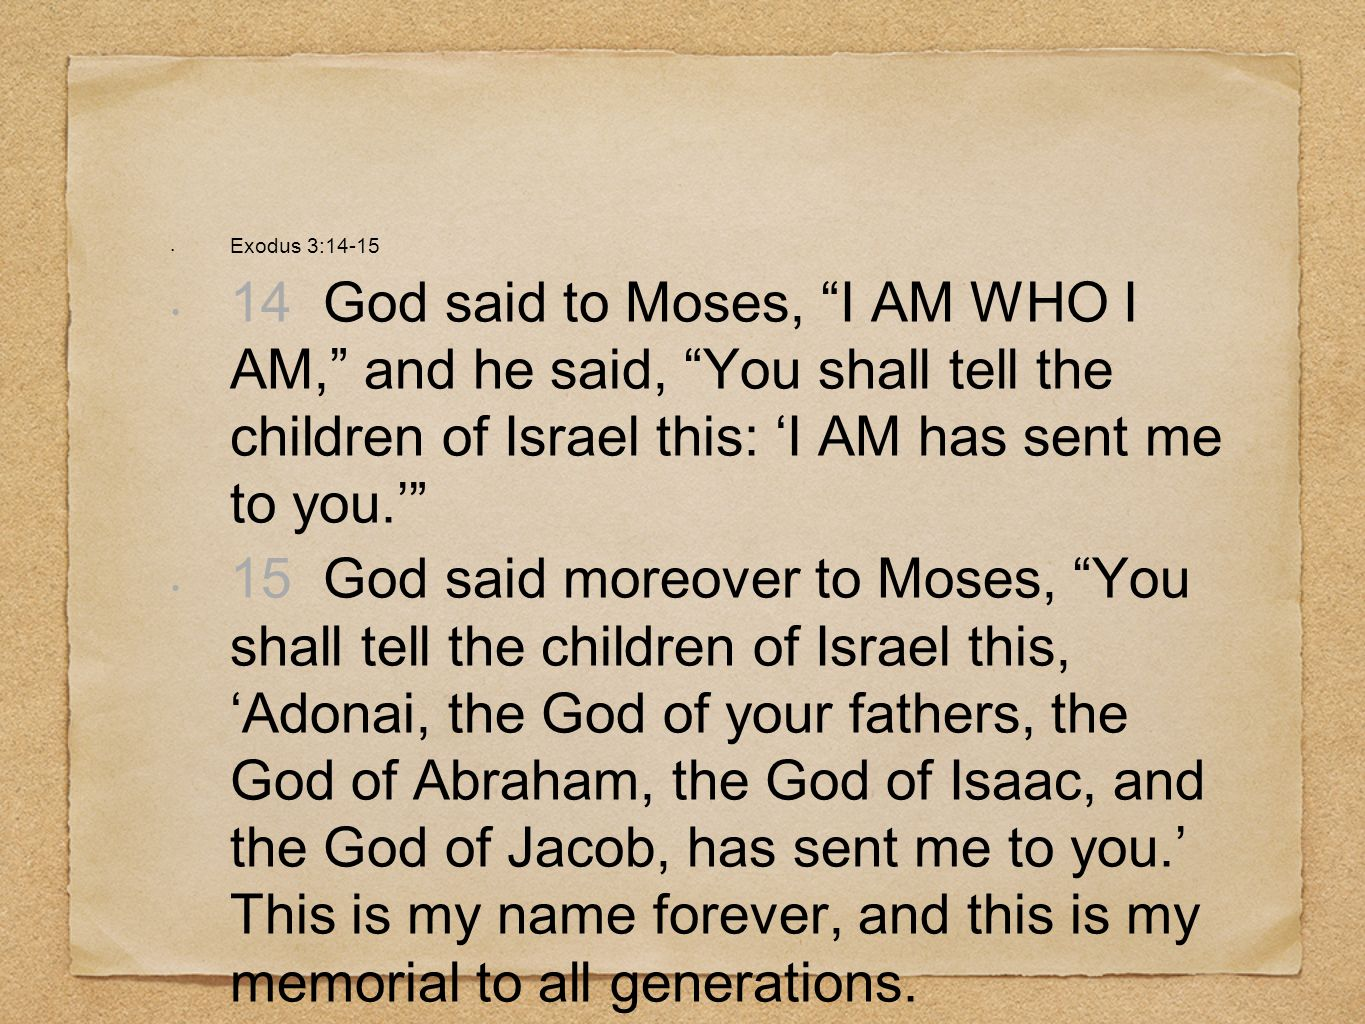 Exodus 3: God said to Moses, I AM WHO I AM, and he said, You shall tell the children of Israel this: 'I AM has sent me to you.'